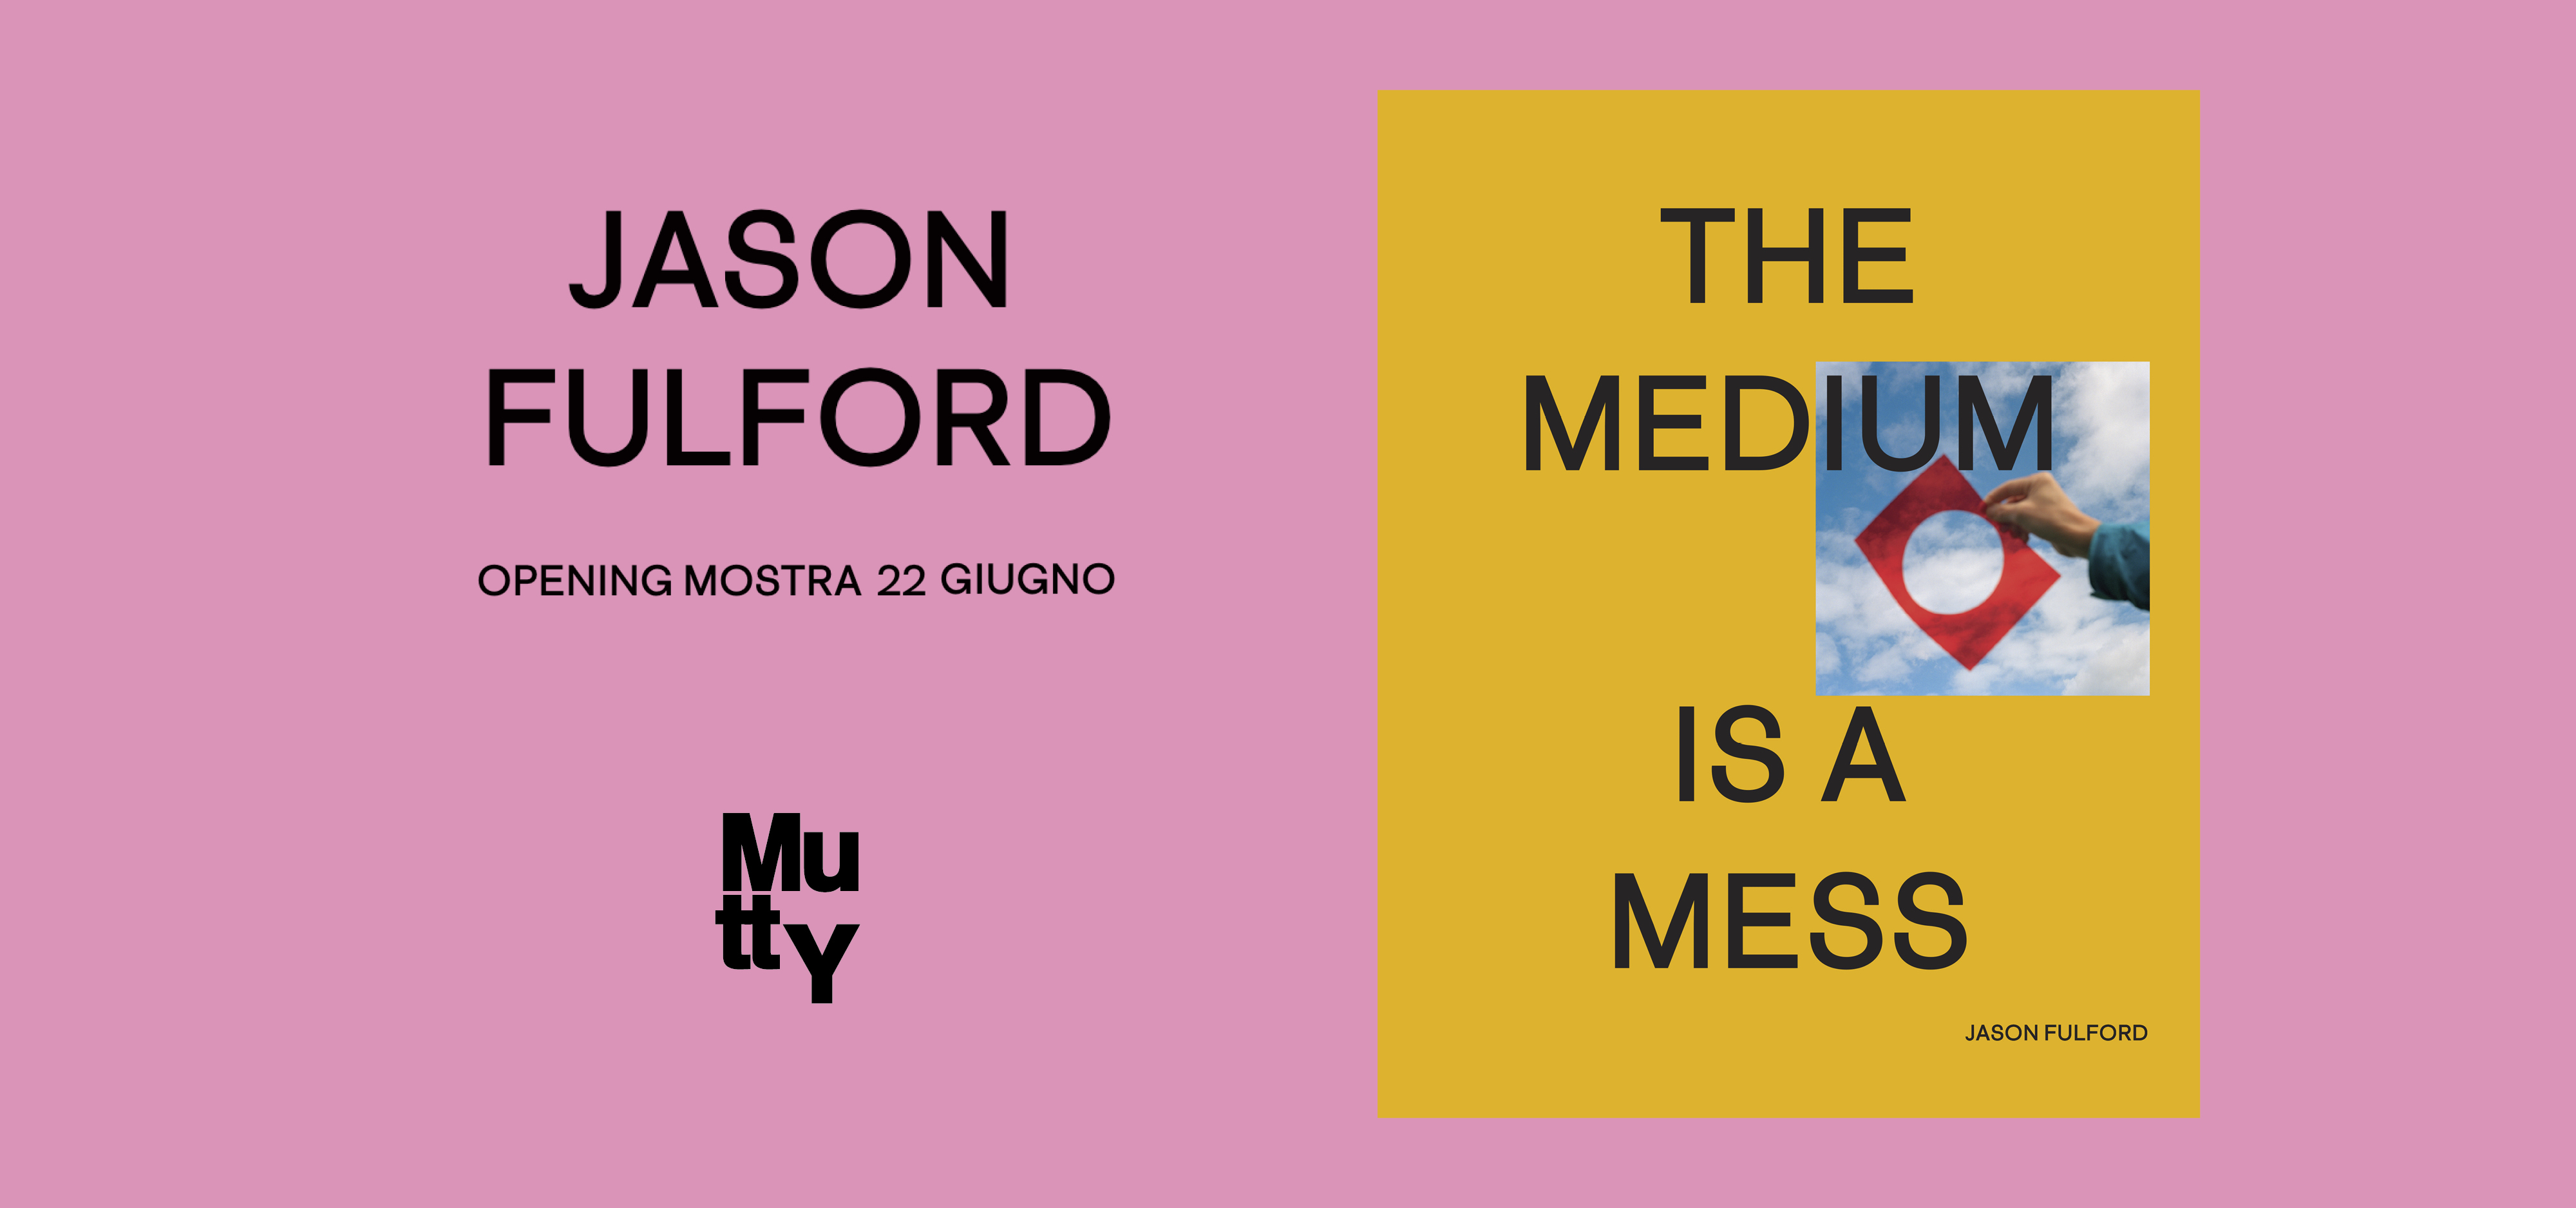 The Medium is a Mess / Jason Fulford & Studio Blanco